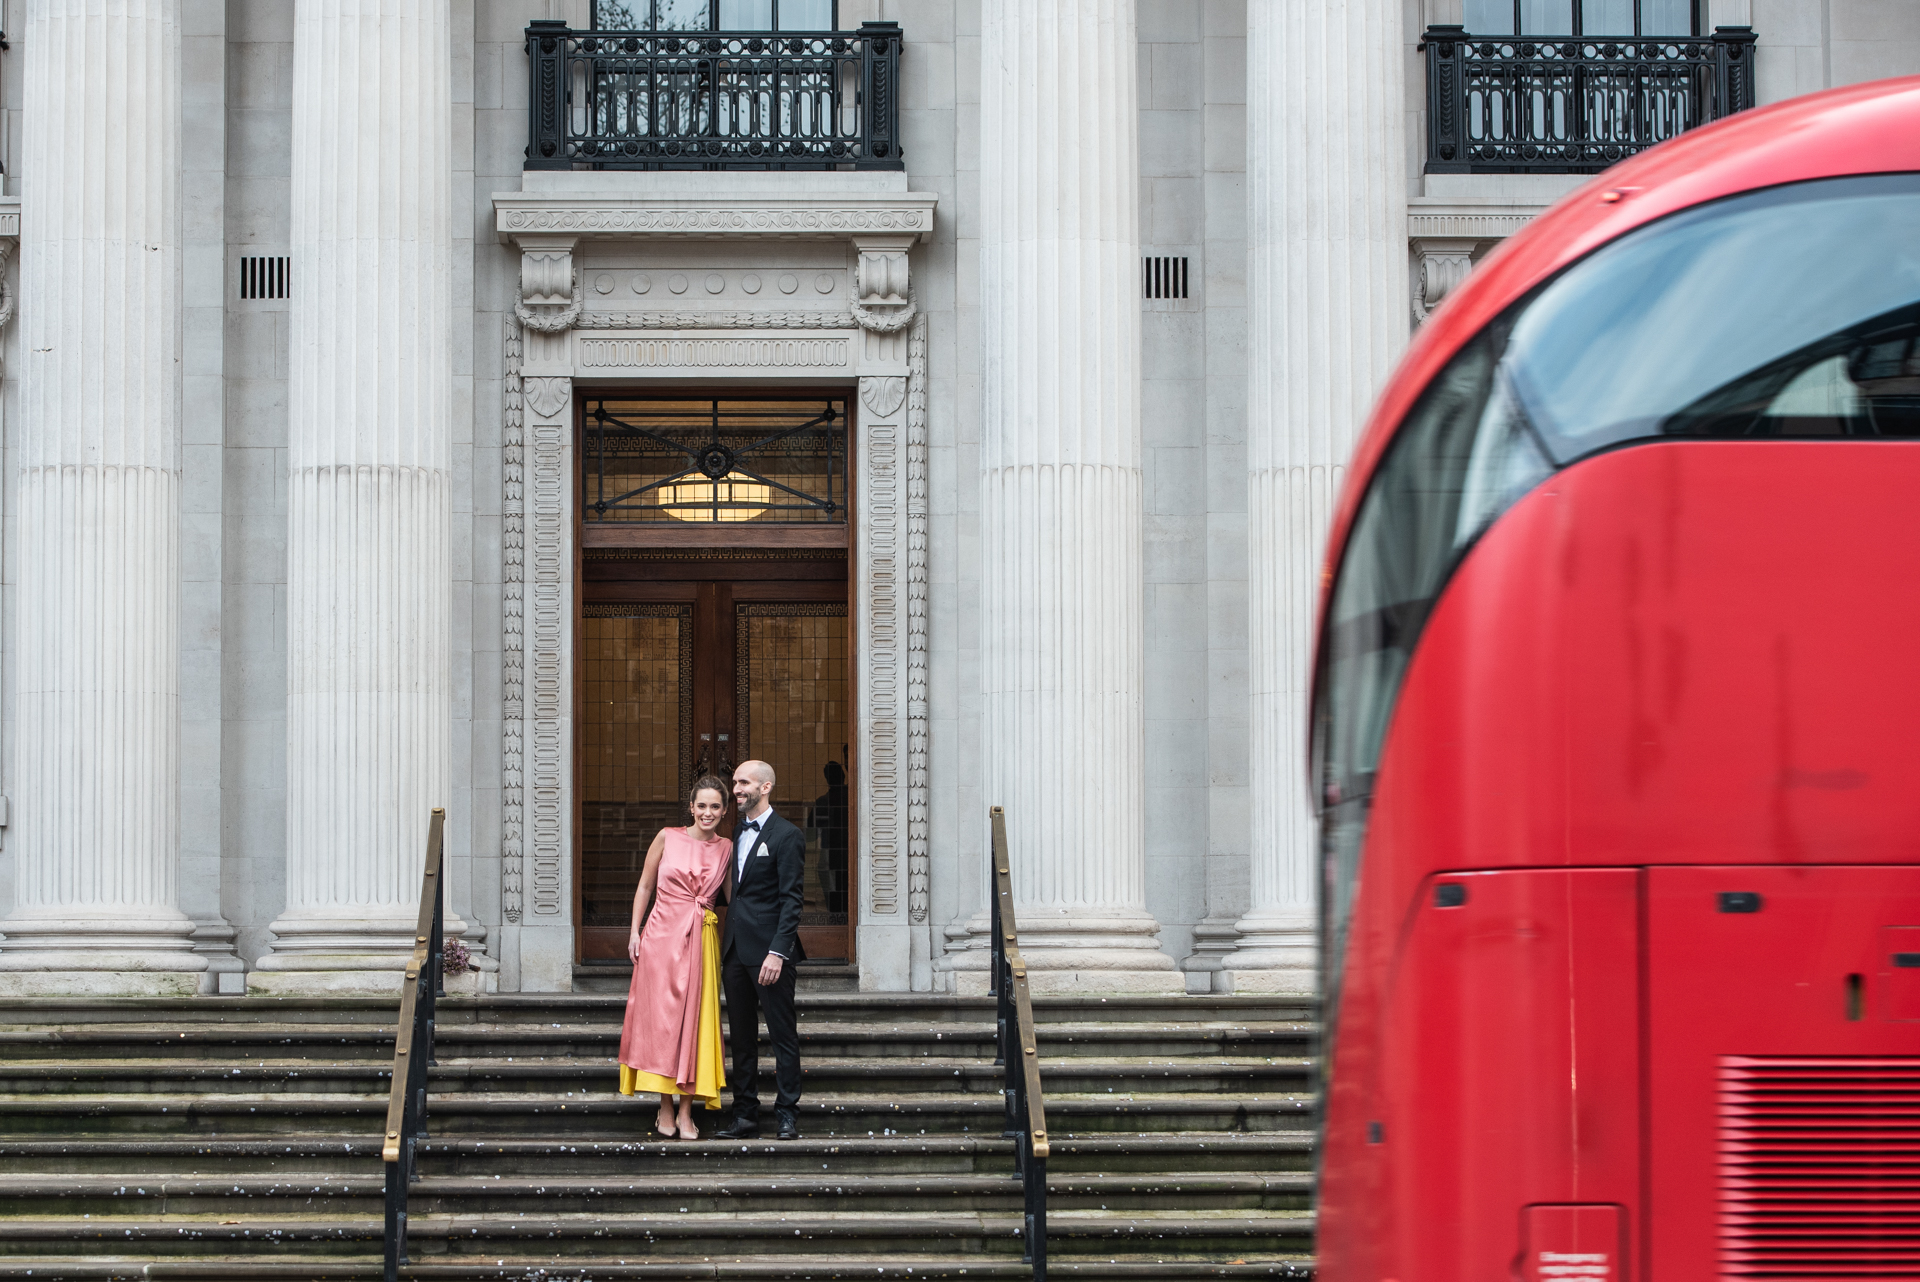 Marylebone Town Hall Weddings - I know I probably shouldn't play favourites, but this central London ceremony venue is hard to beat. I love the elegance of its colonnade and the sumptuous décor of its ceremony rooms. Click below for some Marylebone Town Hall highlights.